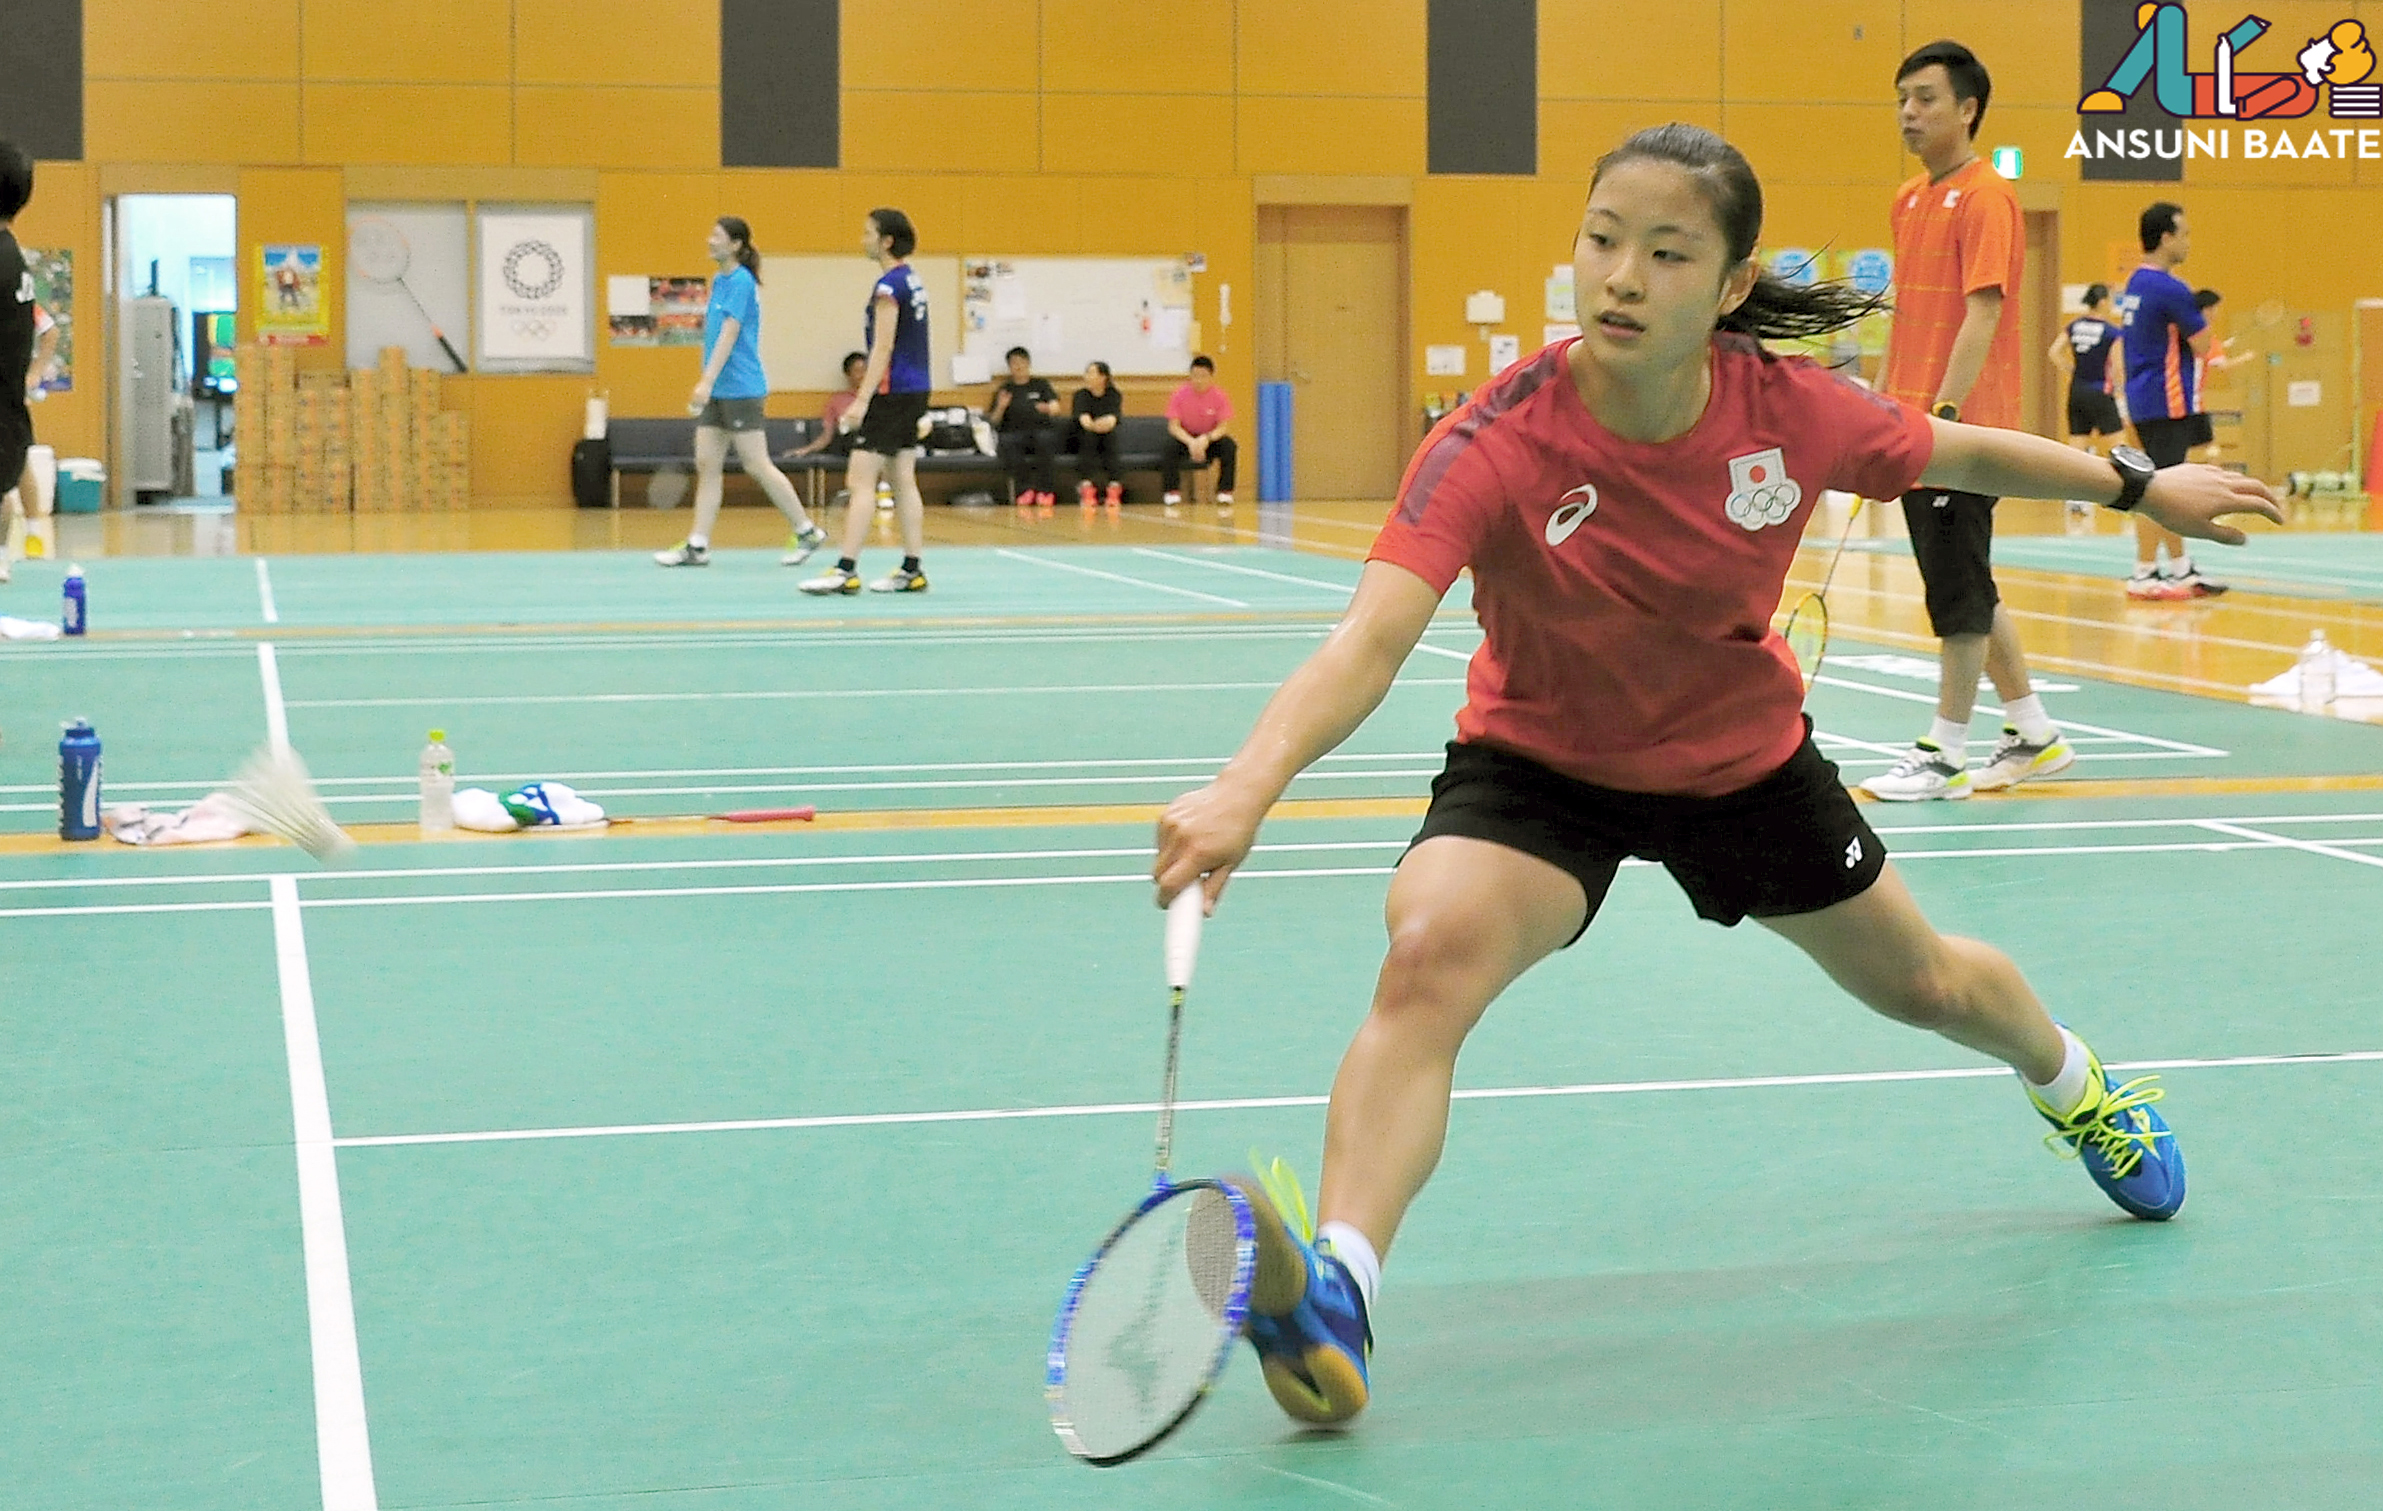 Badminton Photos & HD Badminton Images Gallery Free Download